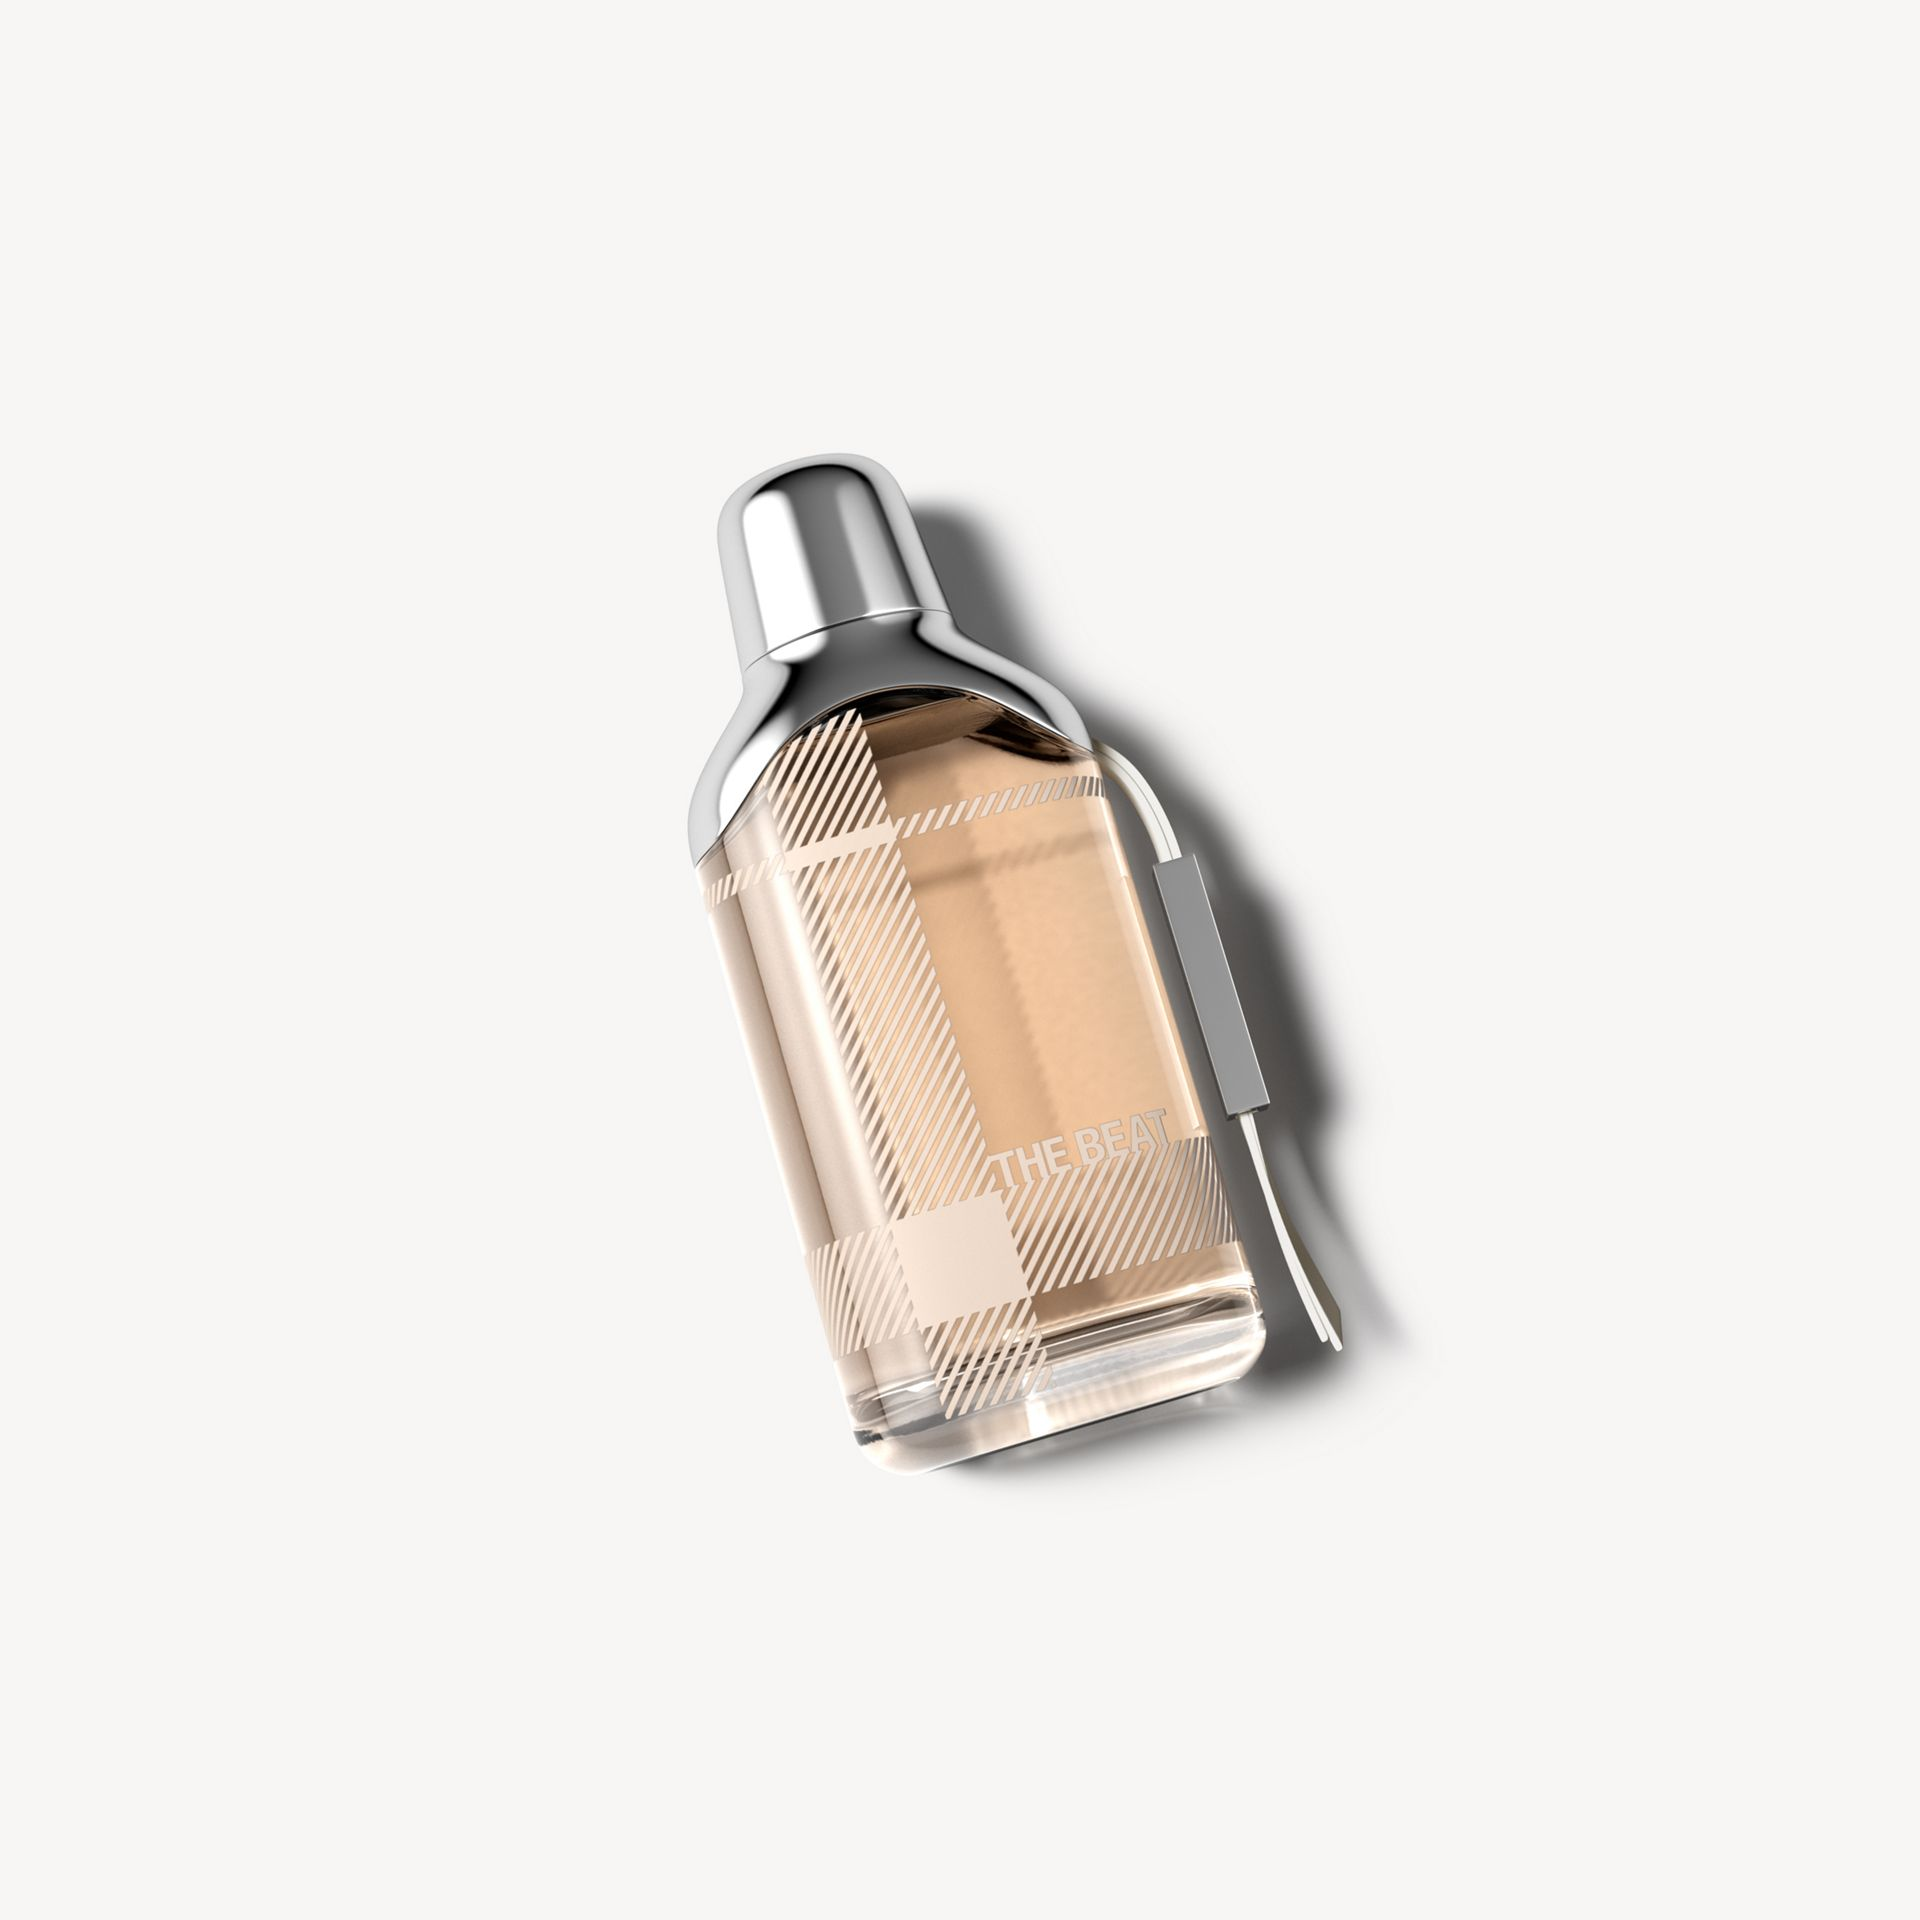 Burberry The Beat Eau de Parfum 50 ml - Galerie-Bild 1